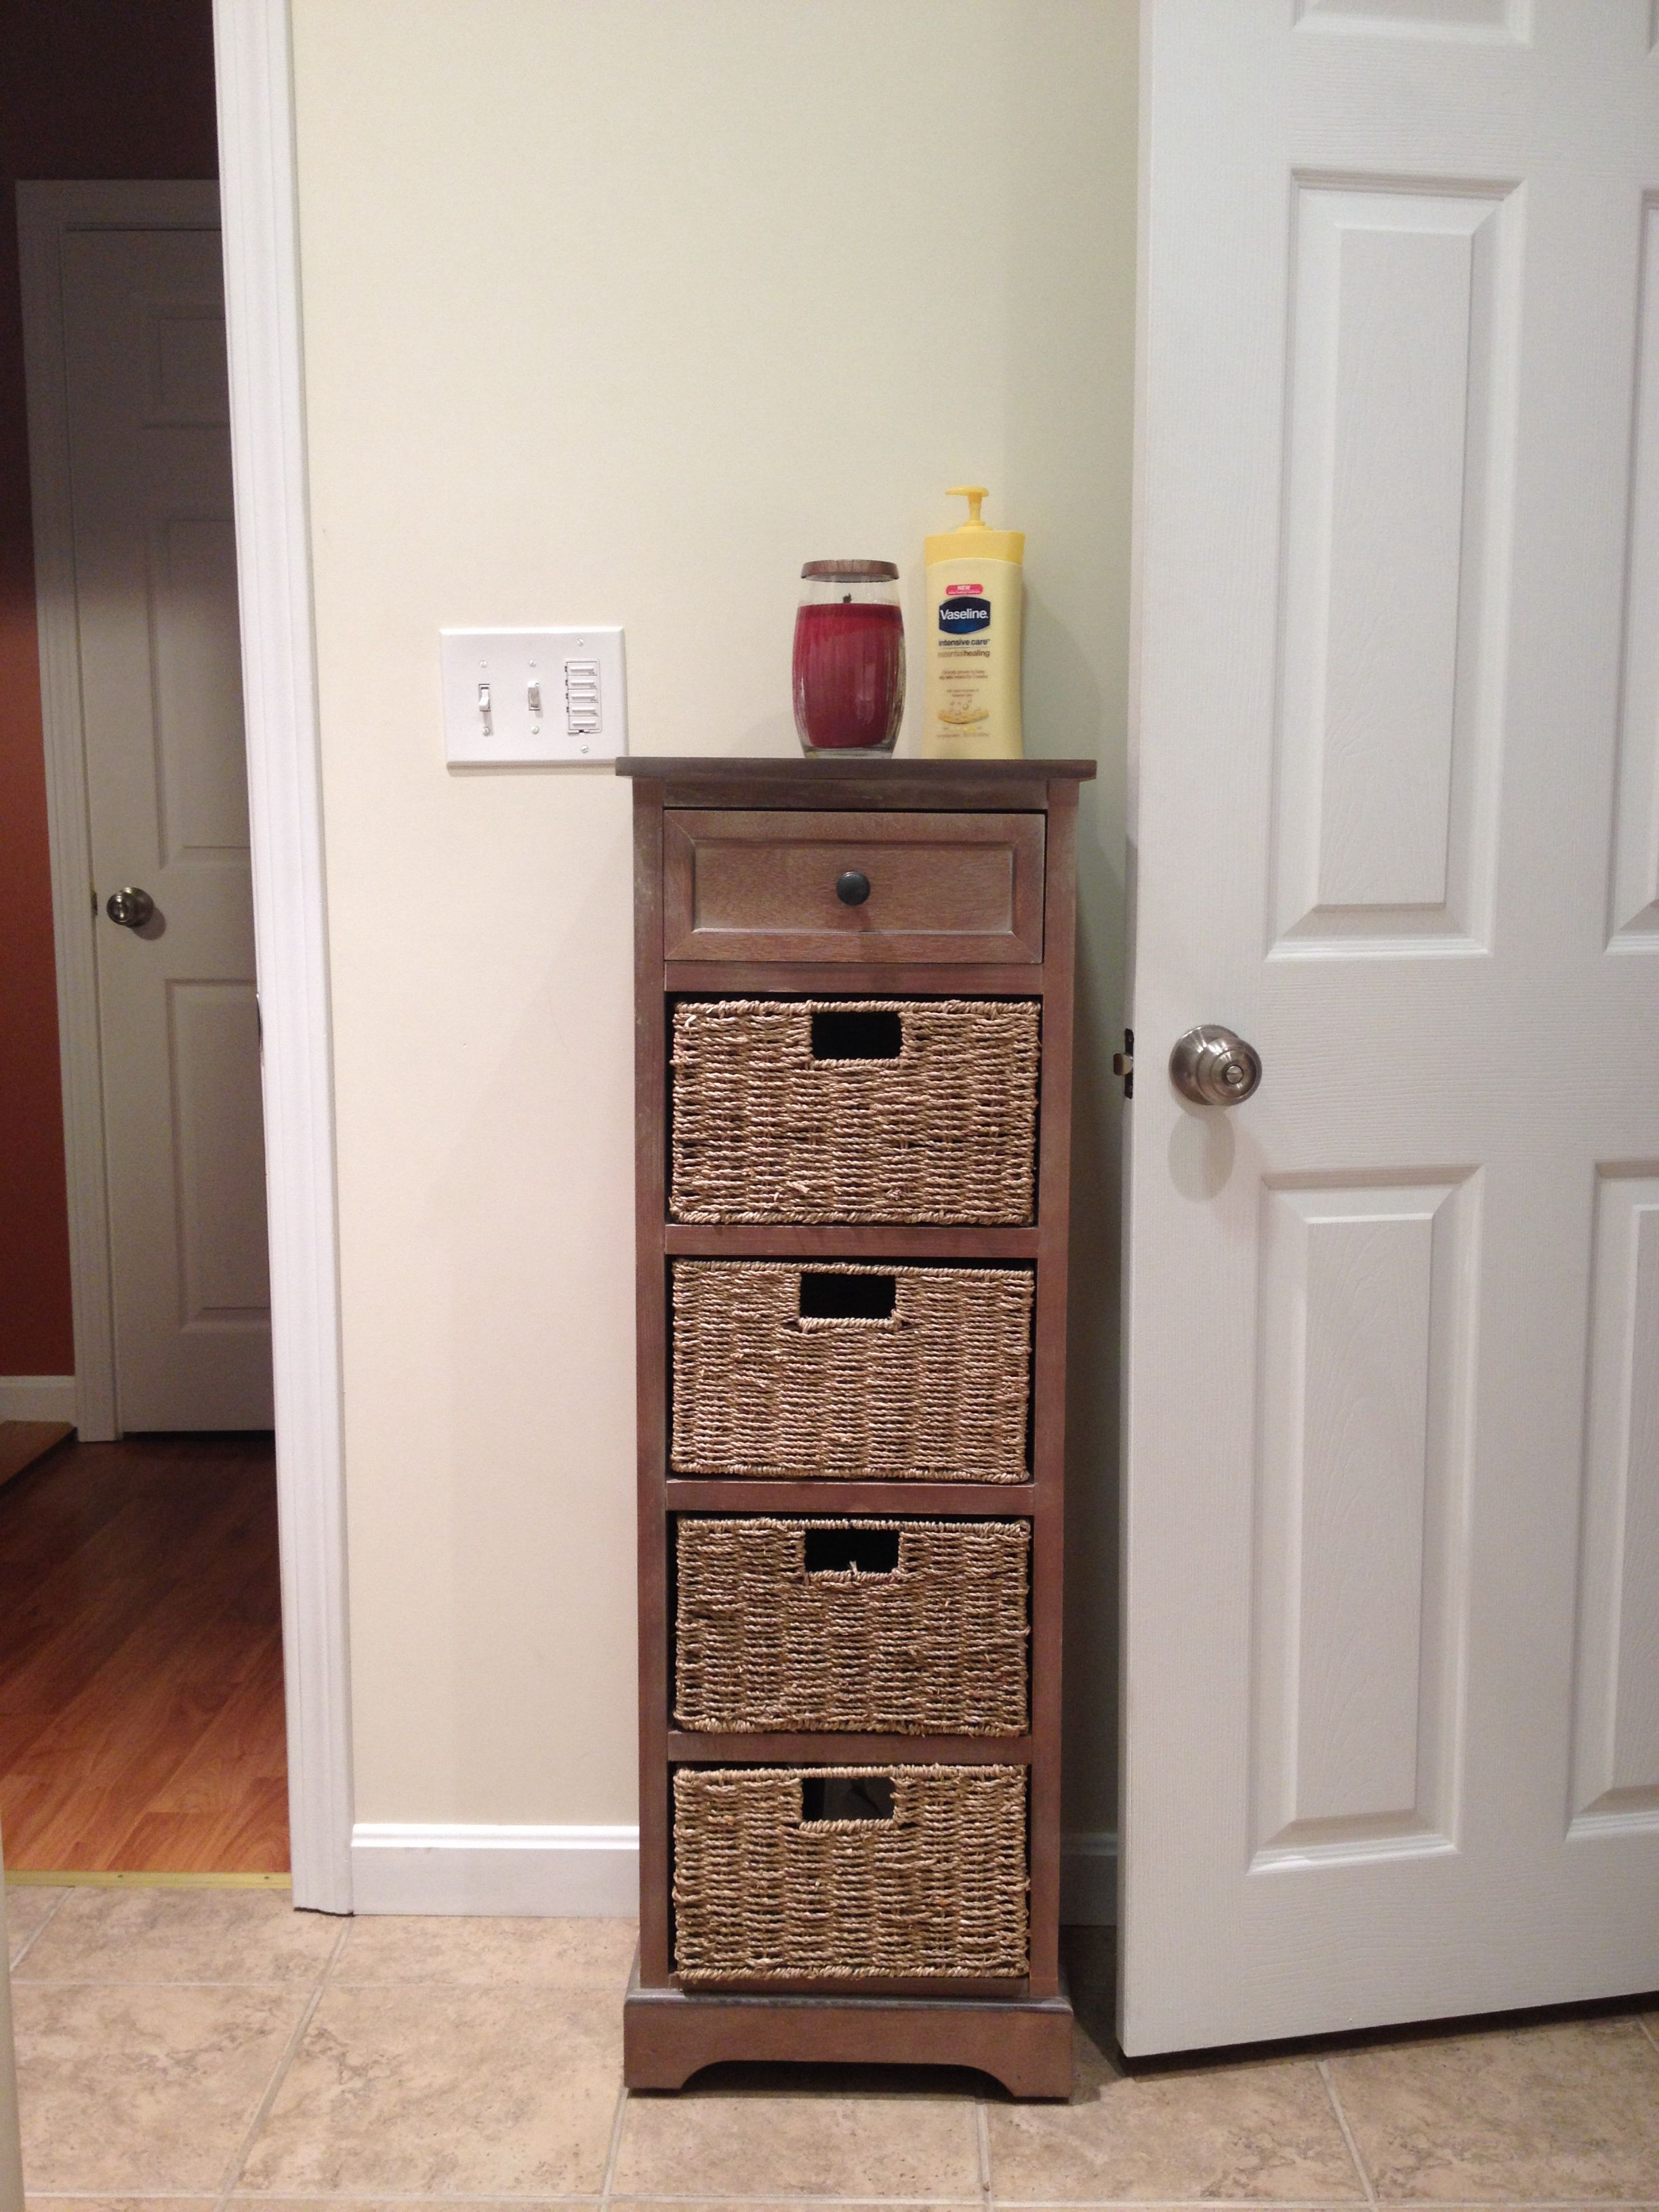 Bathroom Storage Cabinet $100 From Home Goods. Real Wood